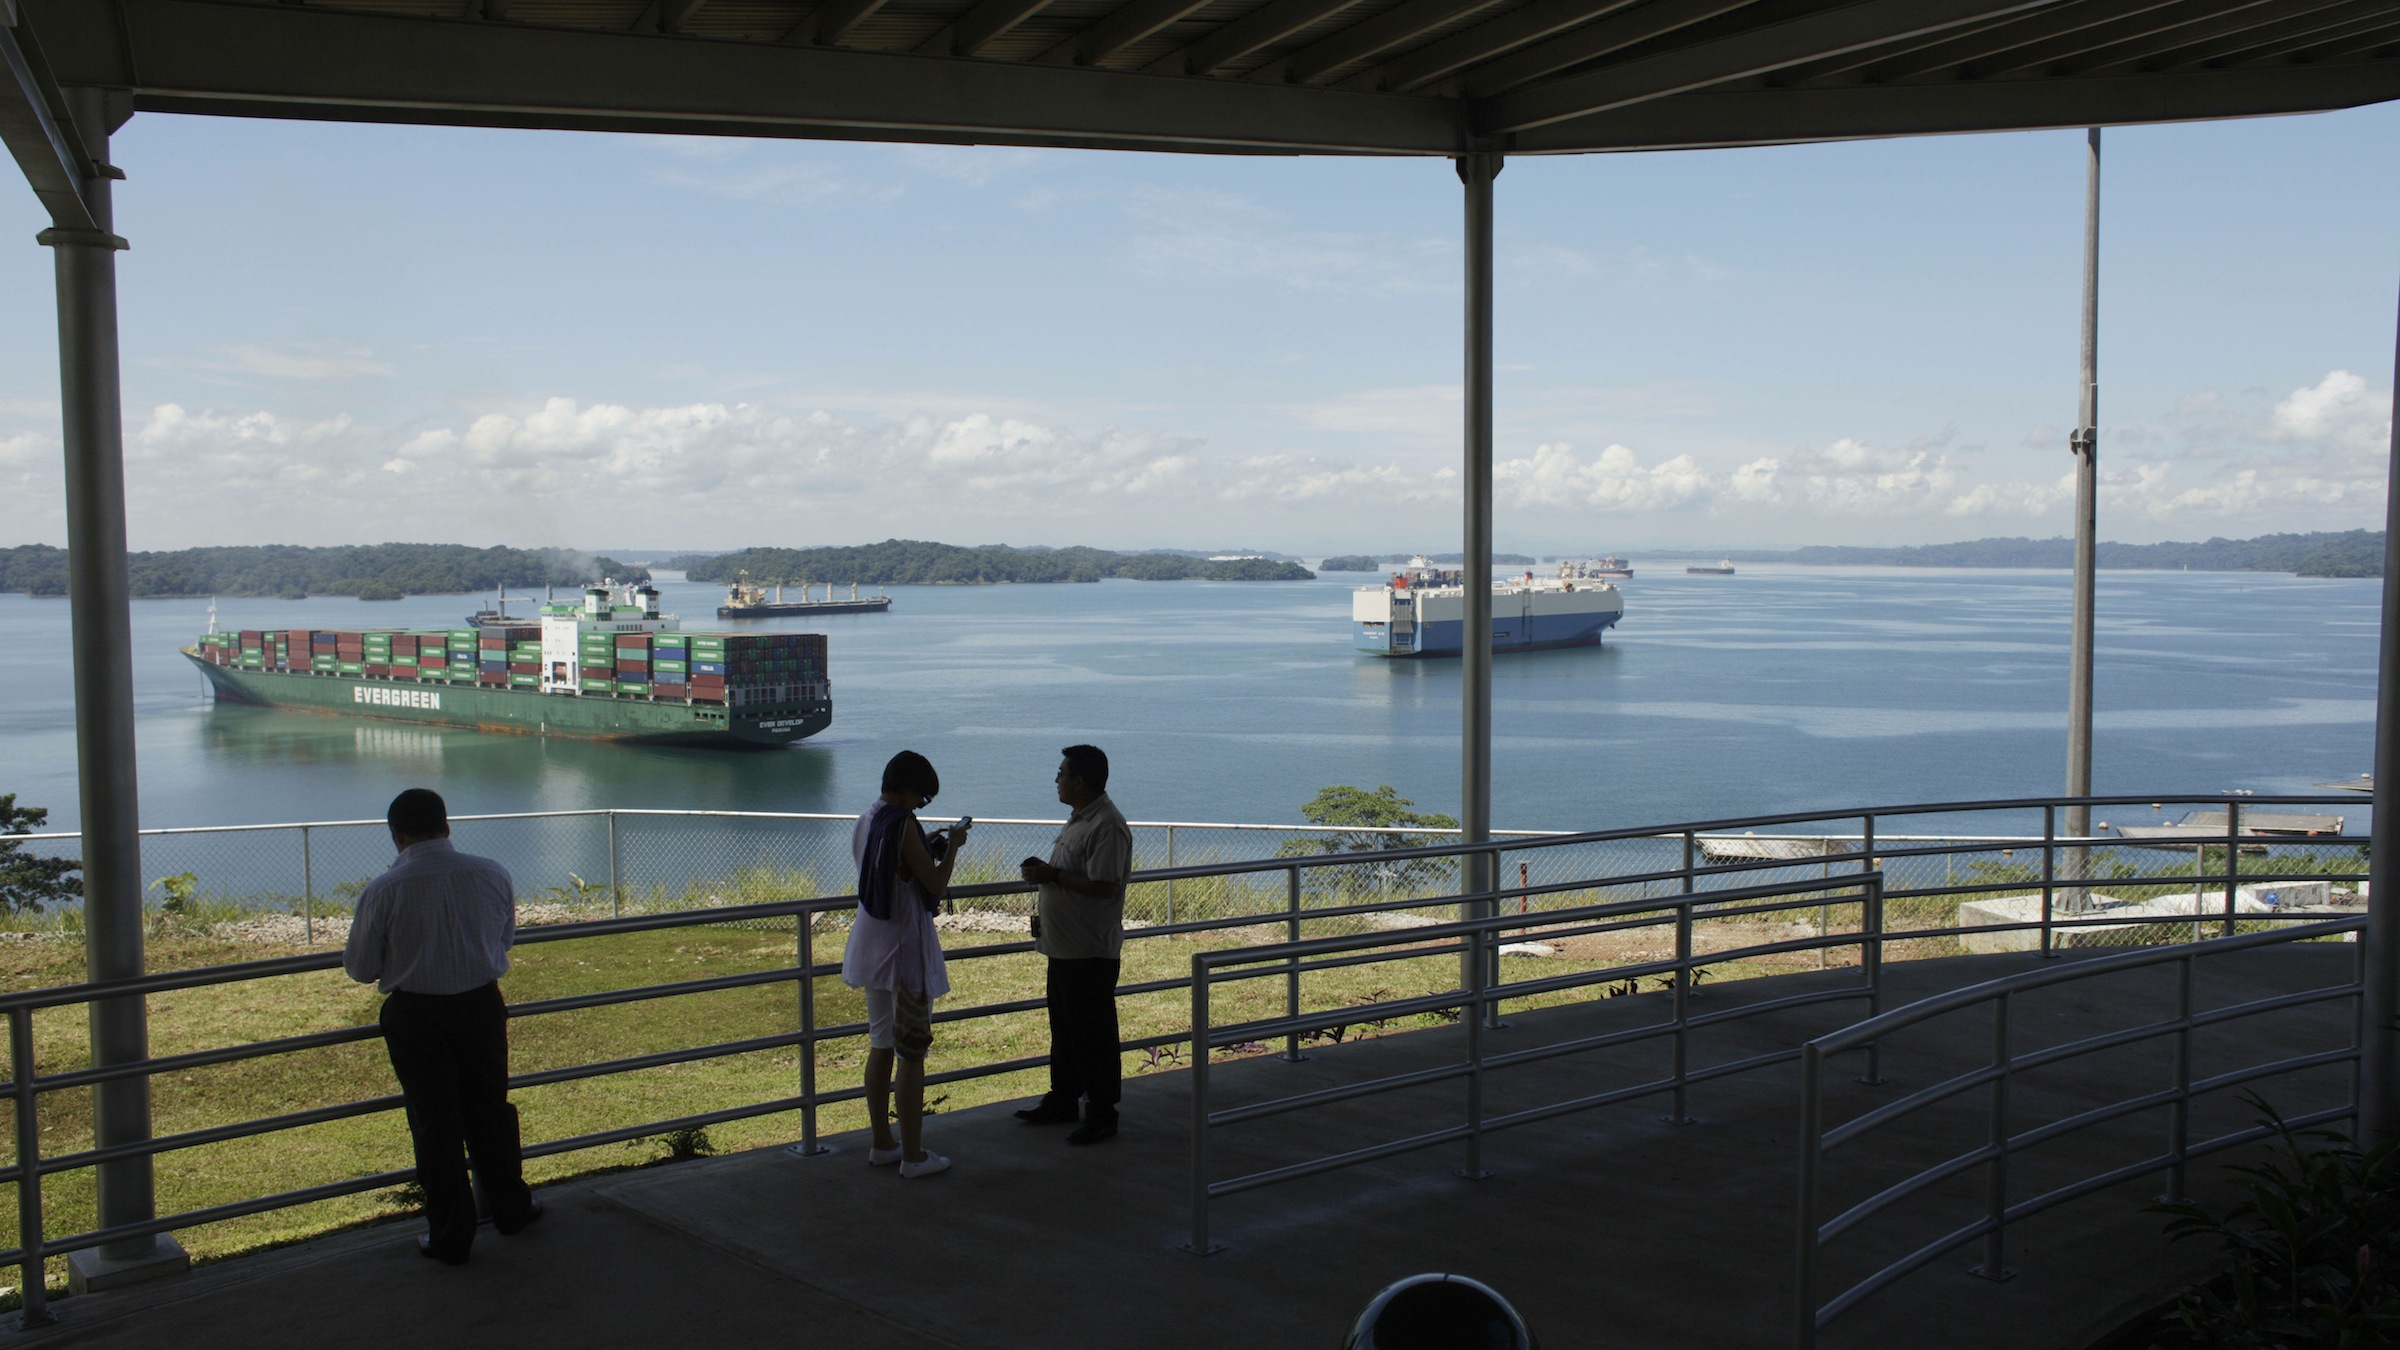 People stand in a new viewing area of the Panama Canal during a media tour in Gatun, Panama, Wednesday, Aug. 15, 2012. The canal marks it's 98th anniversary on Wednesday as it undergoes the biggest expansion project since it opened in 1914, which will allow larger Post-Panamax ships to cross the canal. The new viewing location is currently open to canal workers but will open to tourists when the canal expansion project is done, planned for in 2014. (AP Photo/Arnulfo Franco)